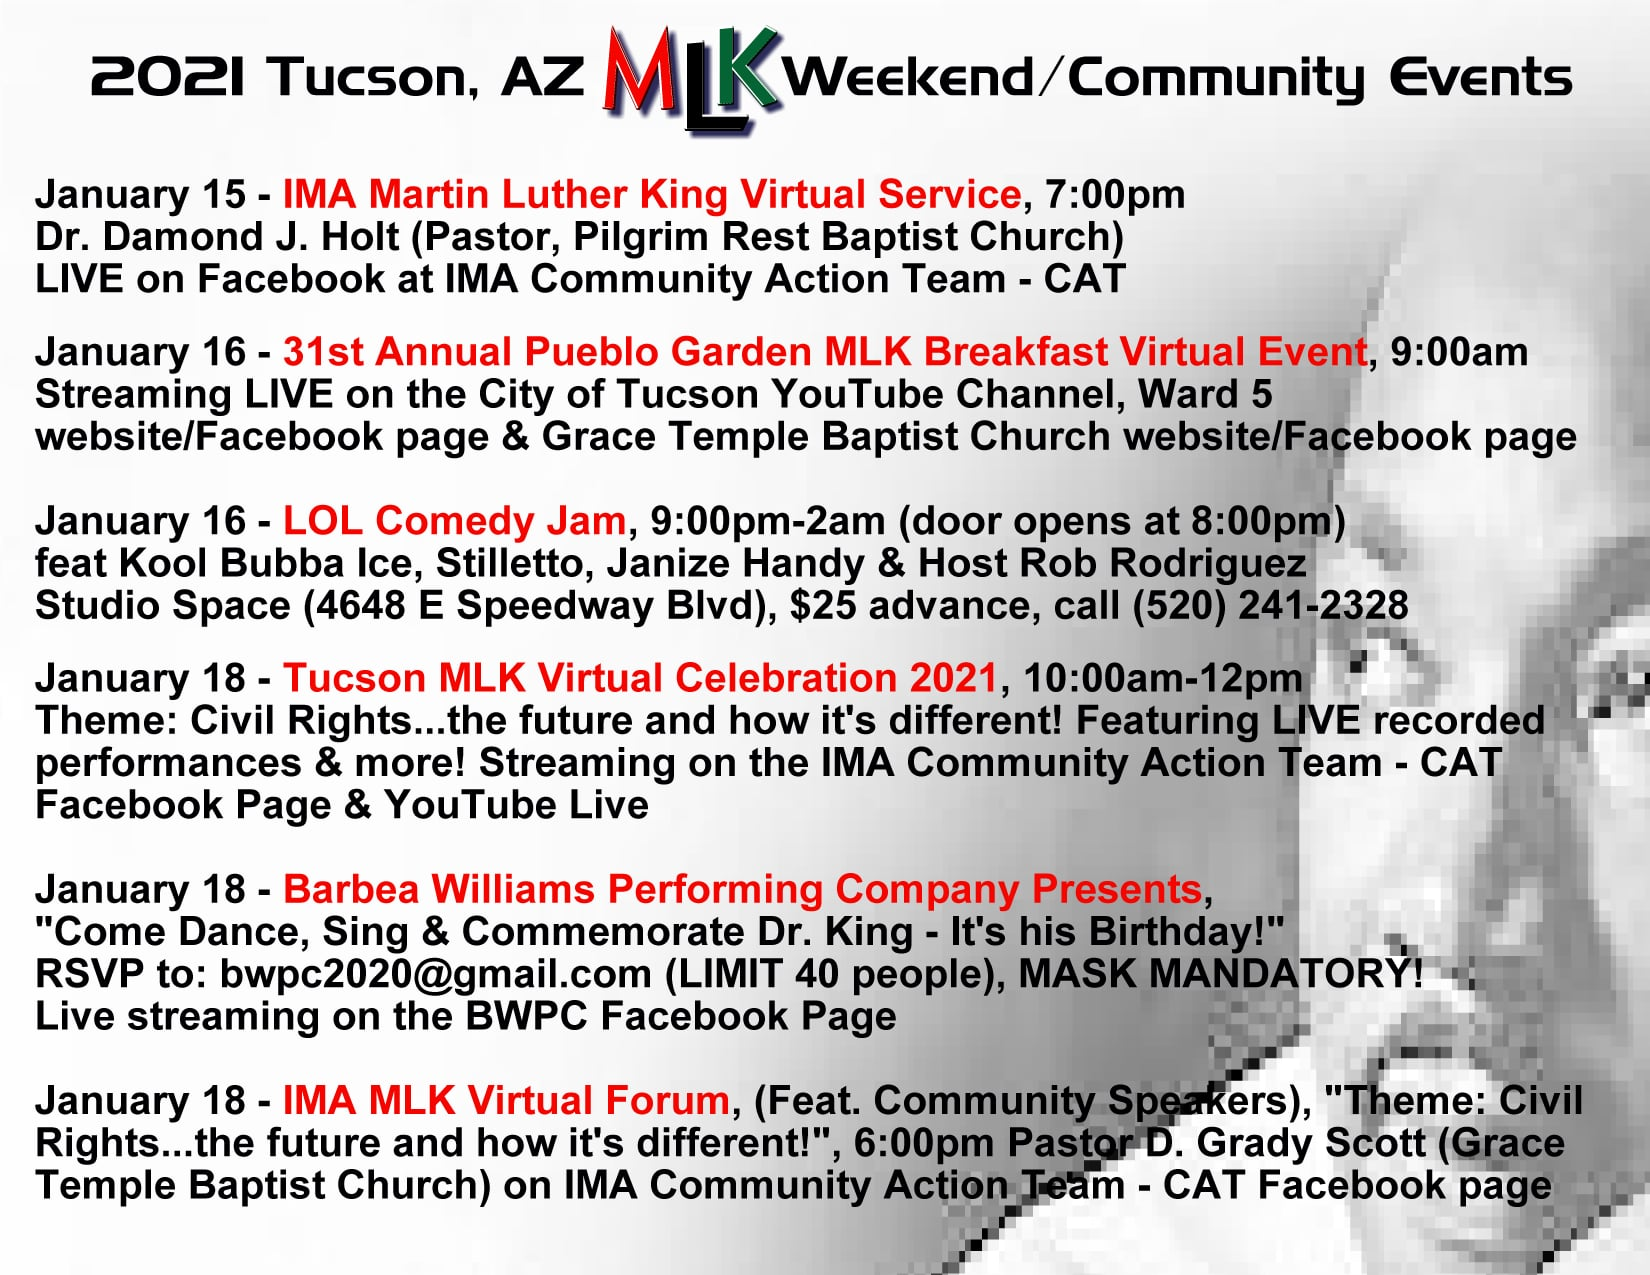 2021 MLK Tucson events, January 15 to 18